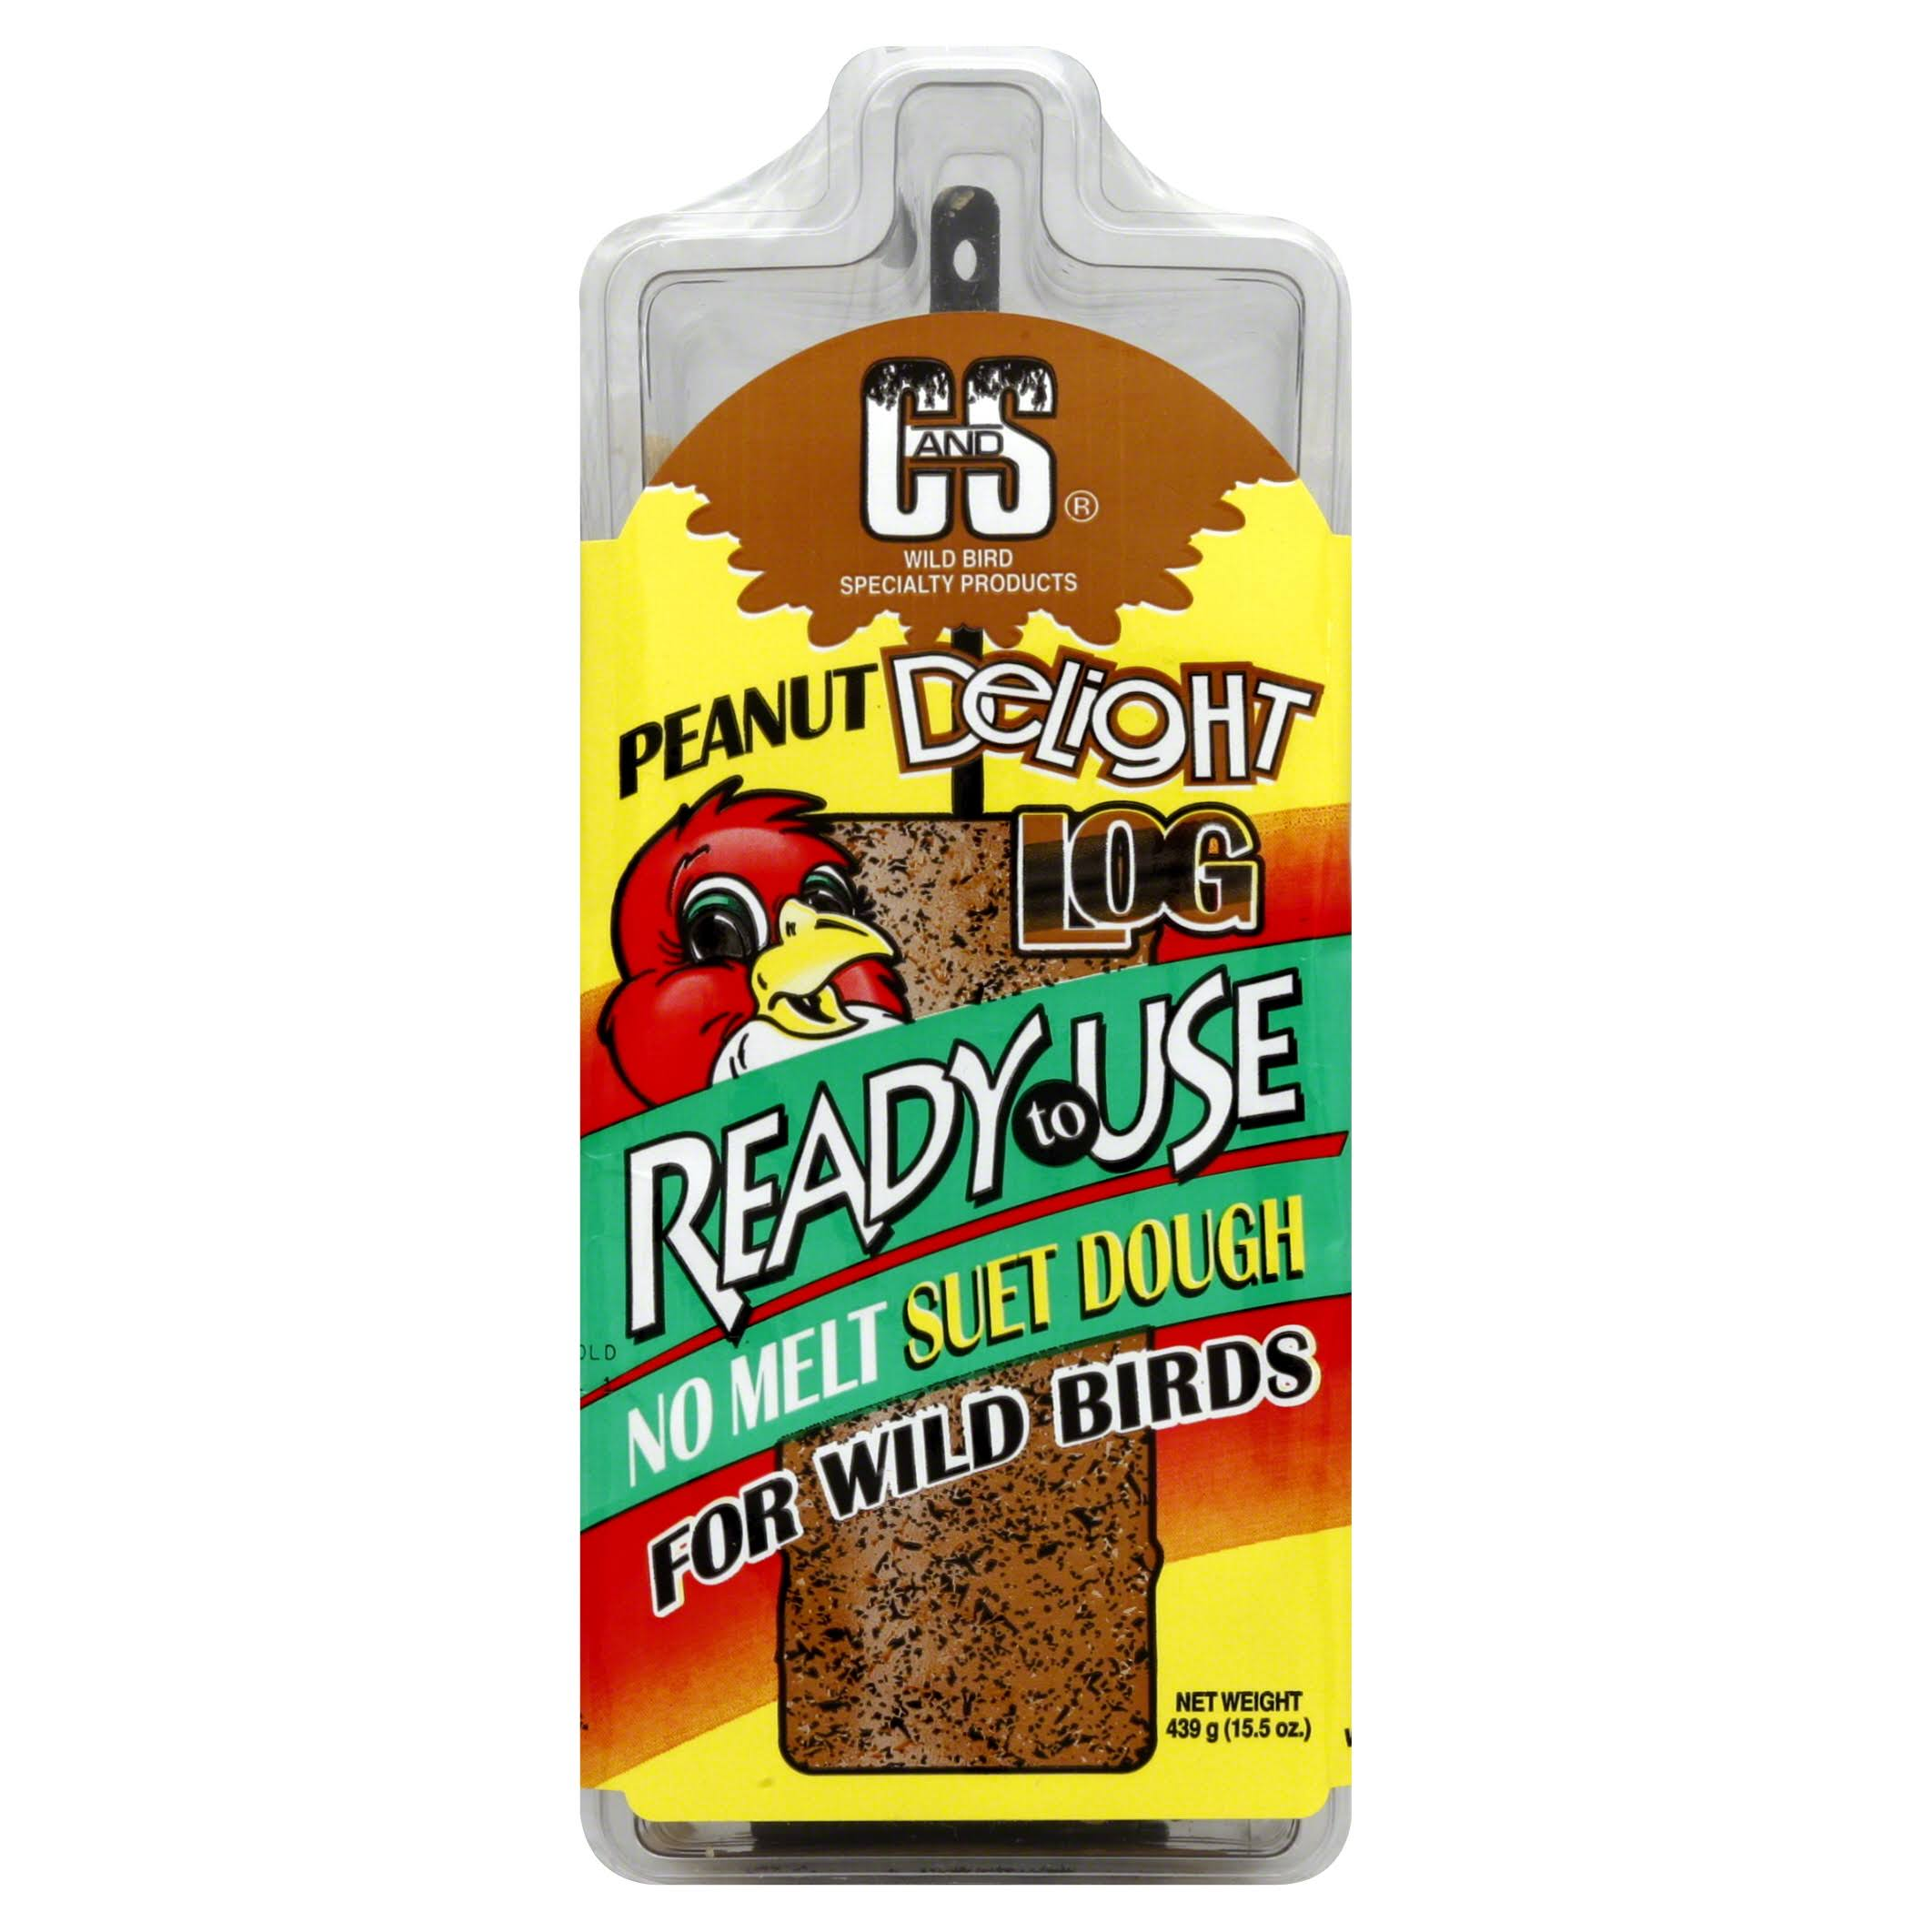 C & S Products Peanut Delight Log - 15.5oz